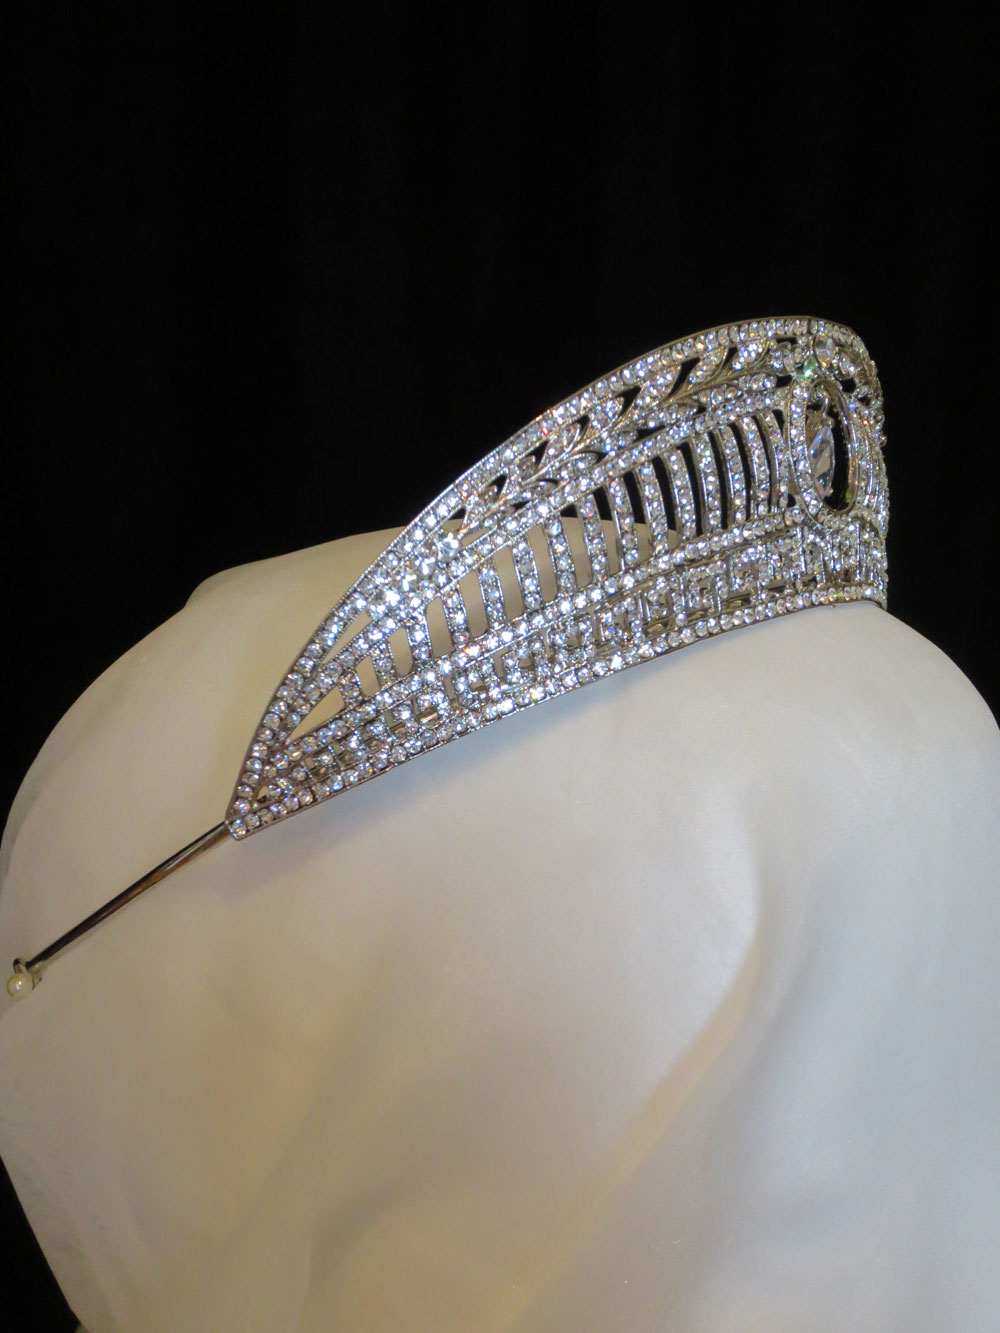 John-Zimmerman-Couture-Headpieces-and-Tiaras-Model-Shell-Gallery-Image-2